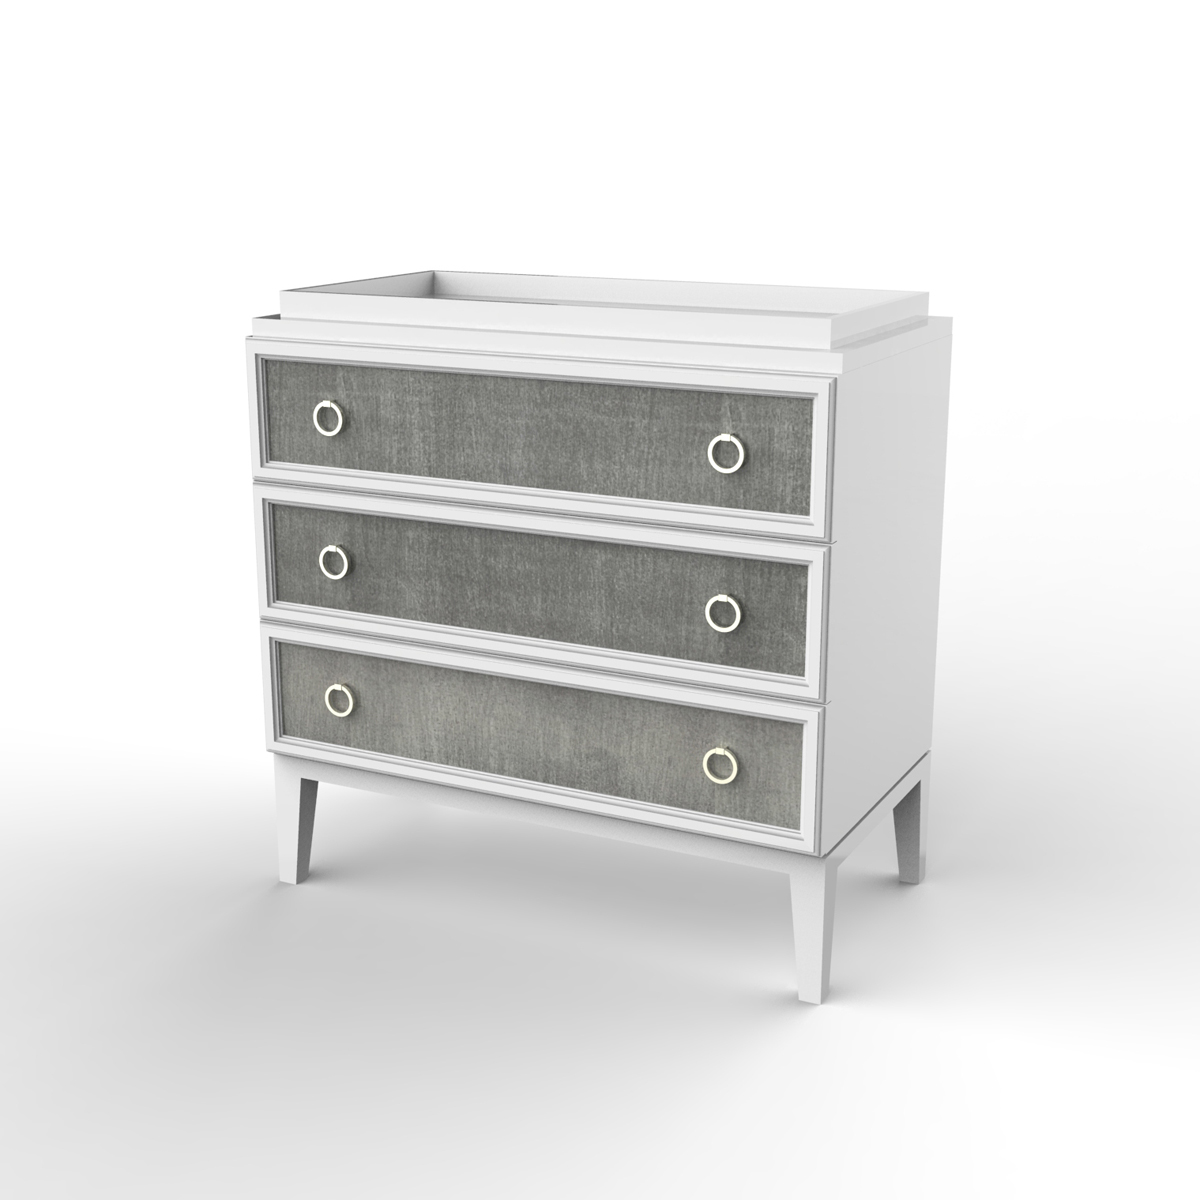 Ducduc Litchfield collection 3 drawer change table white with weathered